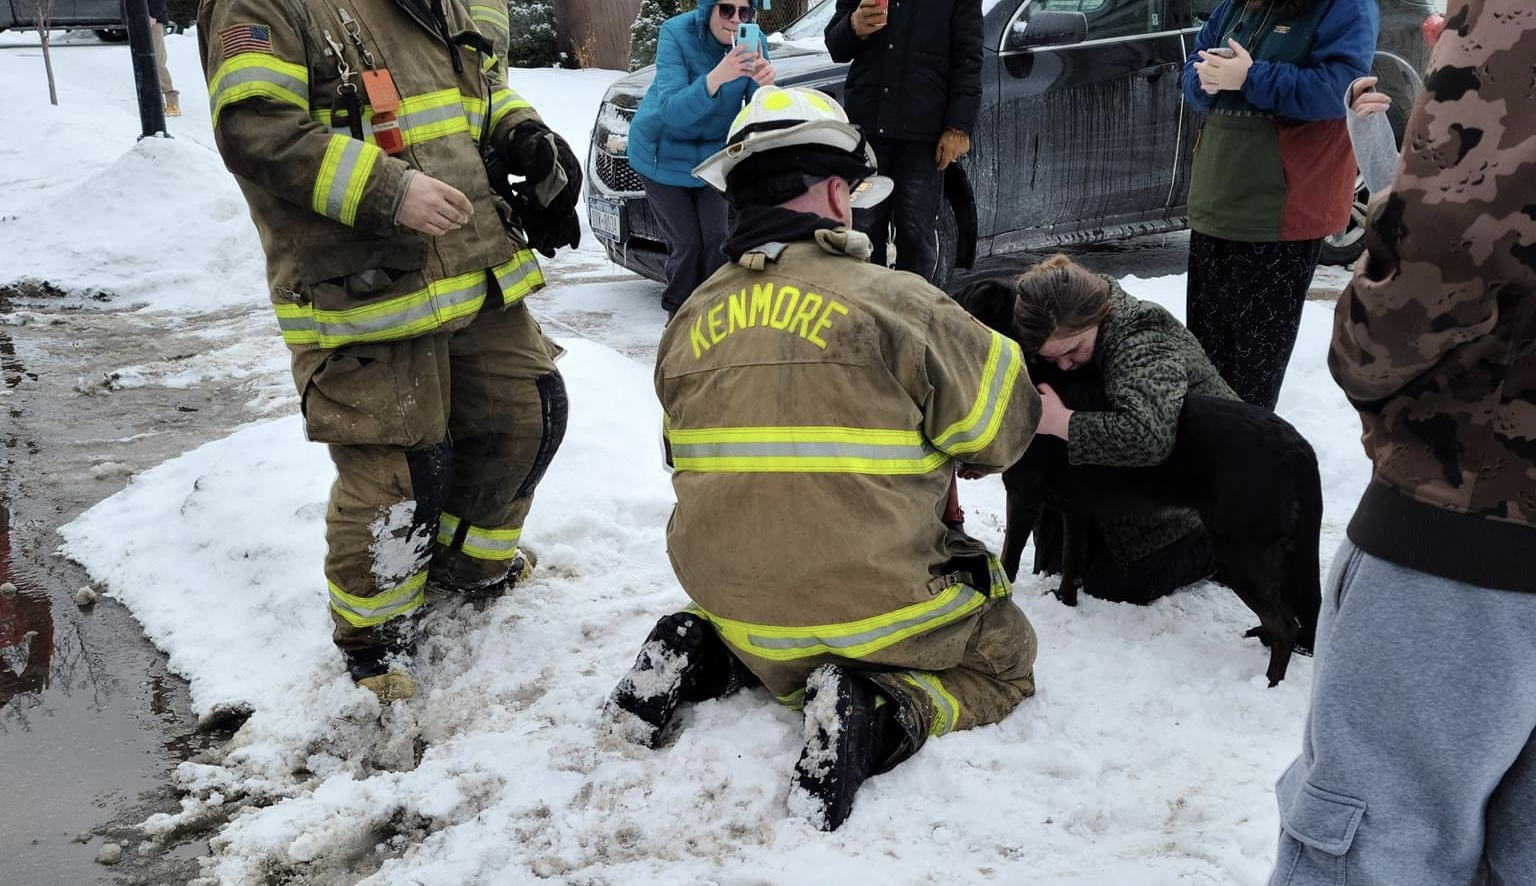 Kenmore Fire Department rescues man and dog from house fire